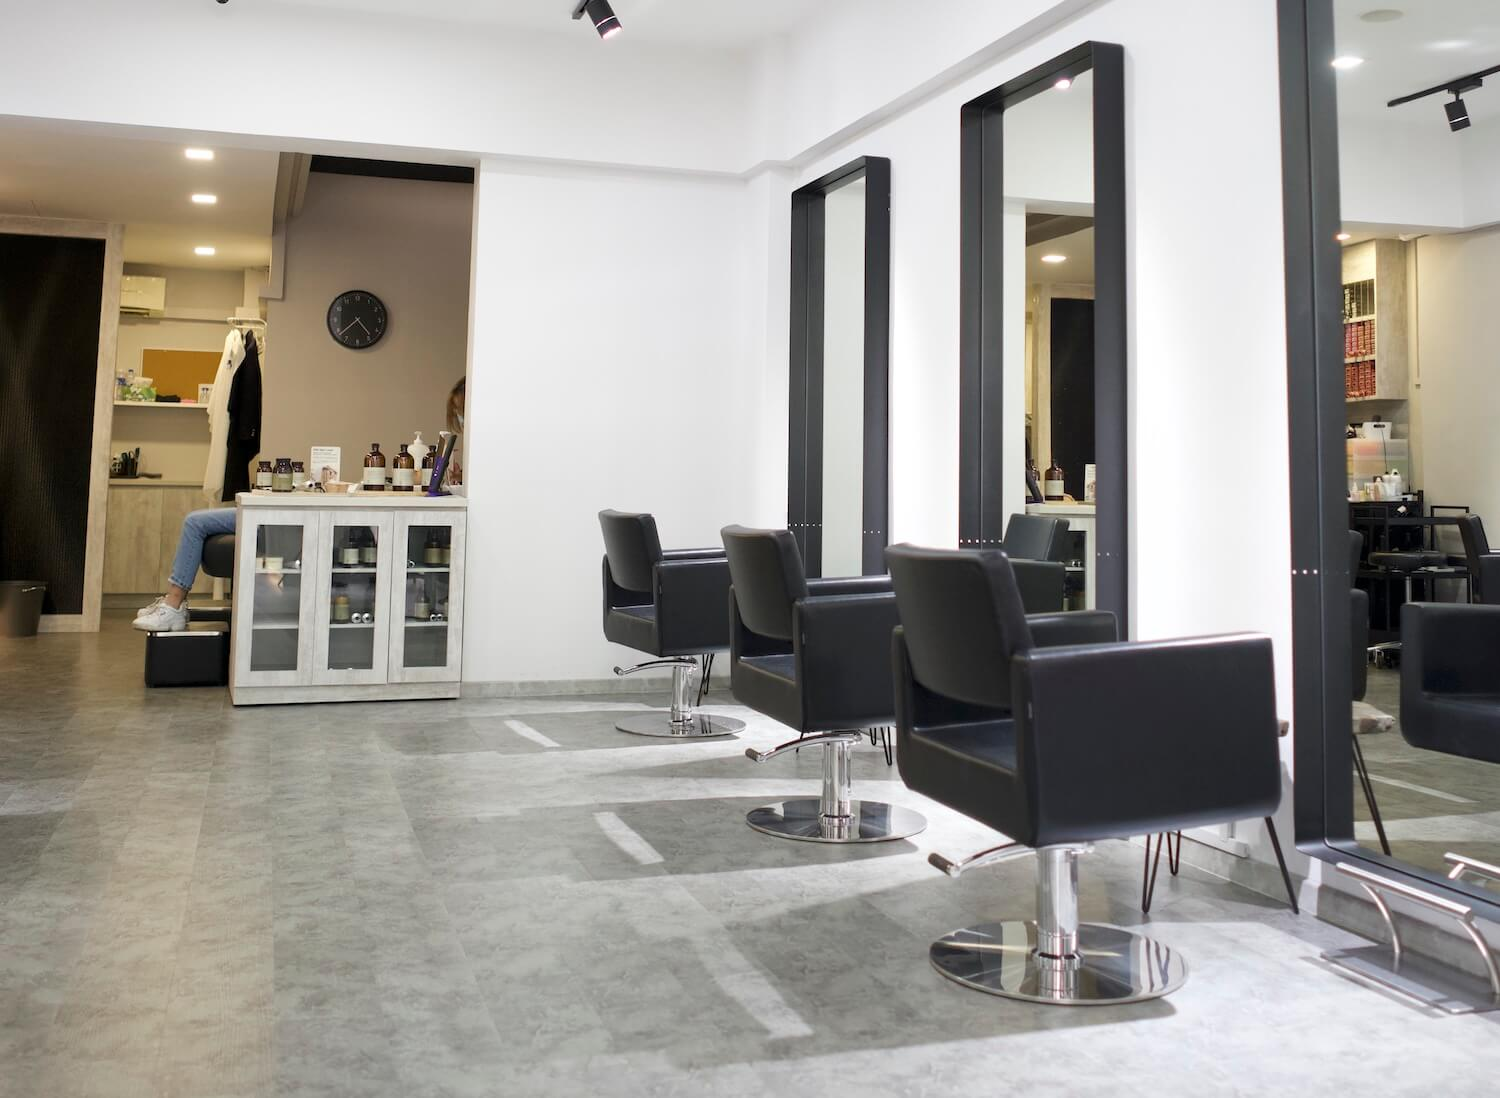 25% OFF All Hair Services + $40 worth of gift if you spend $250 and above